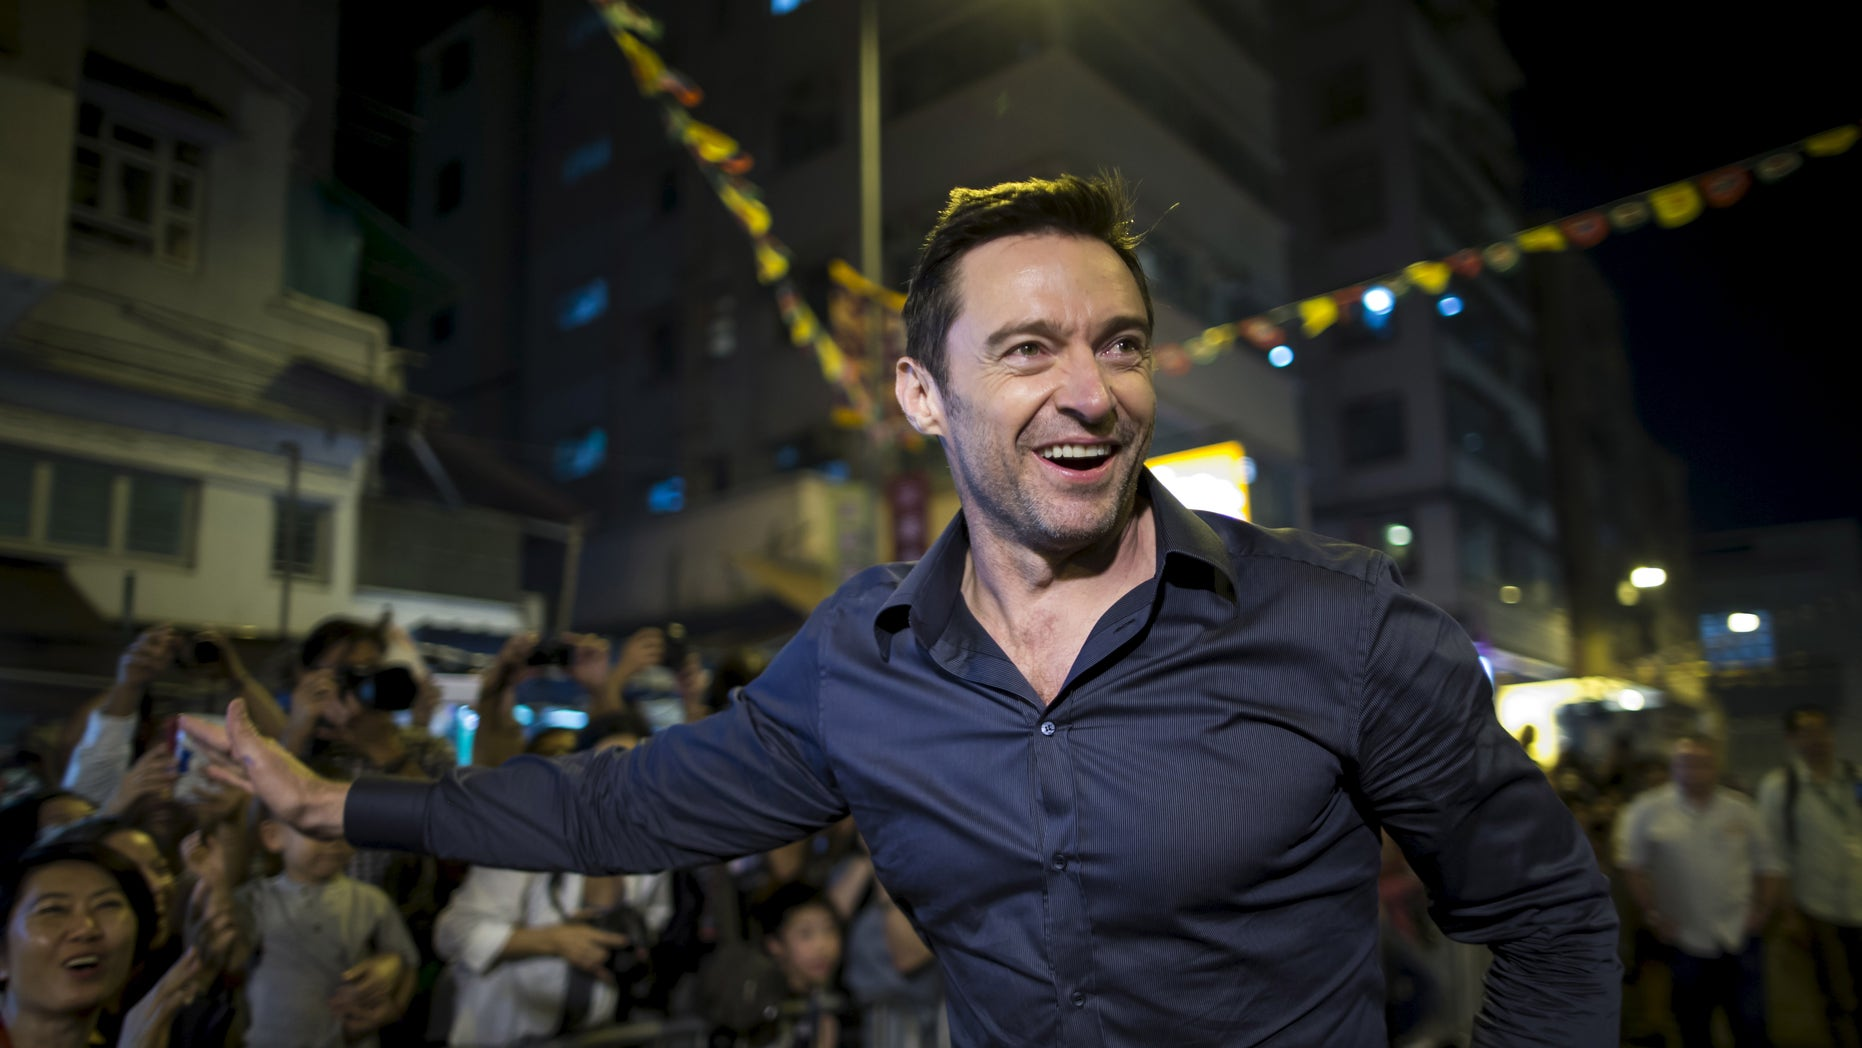 """Australian actor Hugh Jackman waves to fans at the """"Tai Hang Fire Dragon Dance"""" event to celebrate the Mid-Autumn Festival during a trip to promote his latest film """"Pan"""" in Hong Kong, China September 28, 2015. HKTB2016 REUTERS/Tyrone Siu - RTSG9H9"""